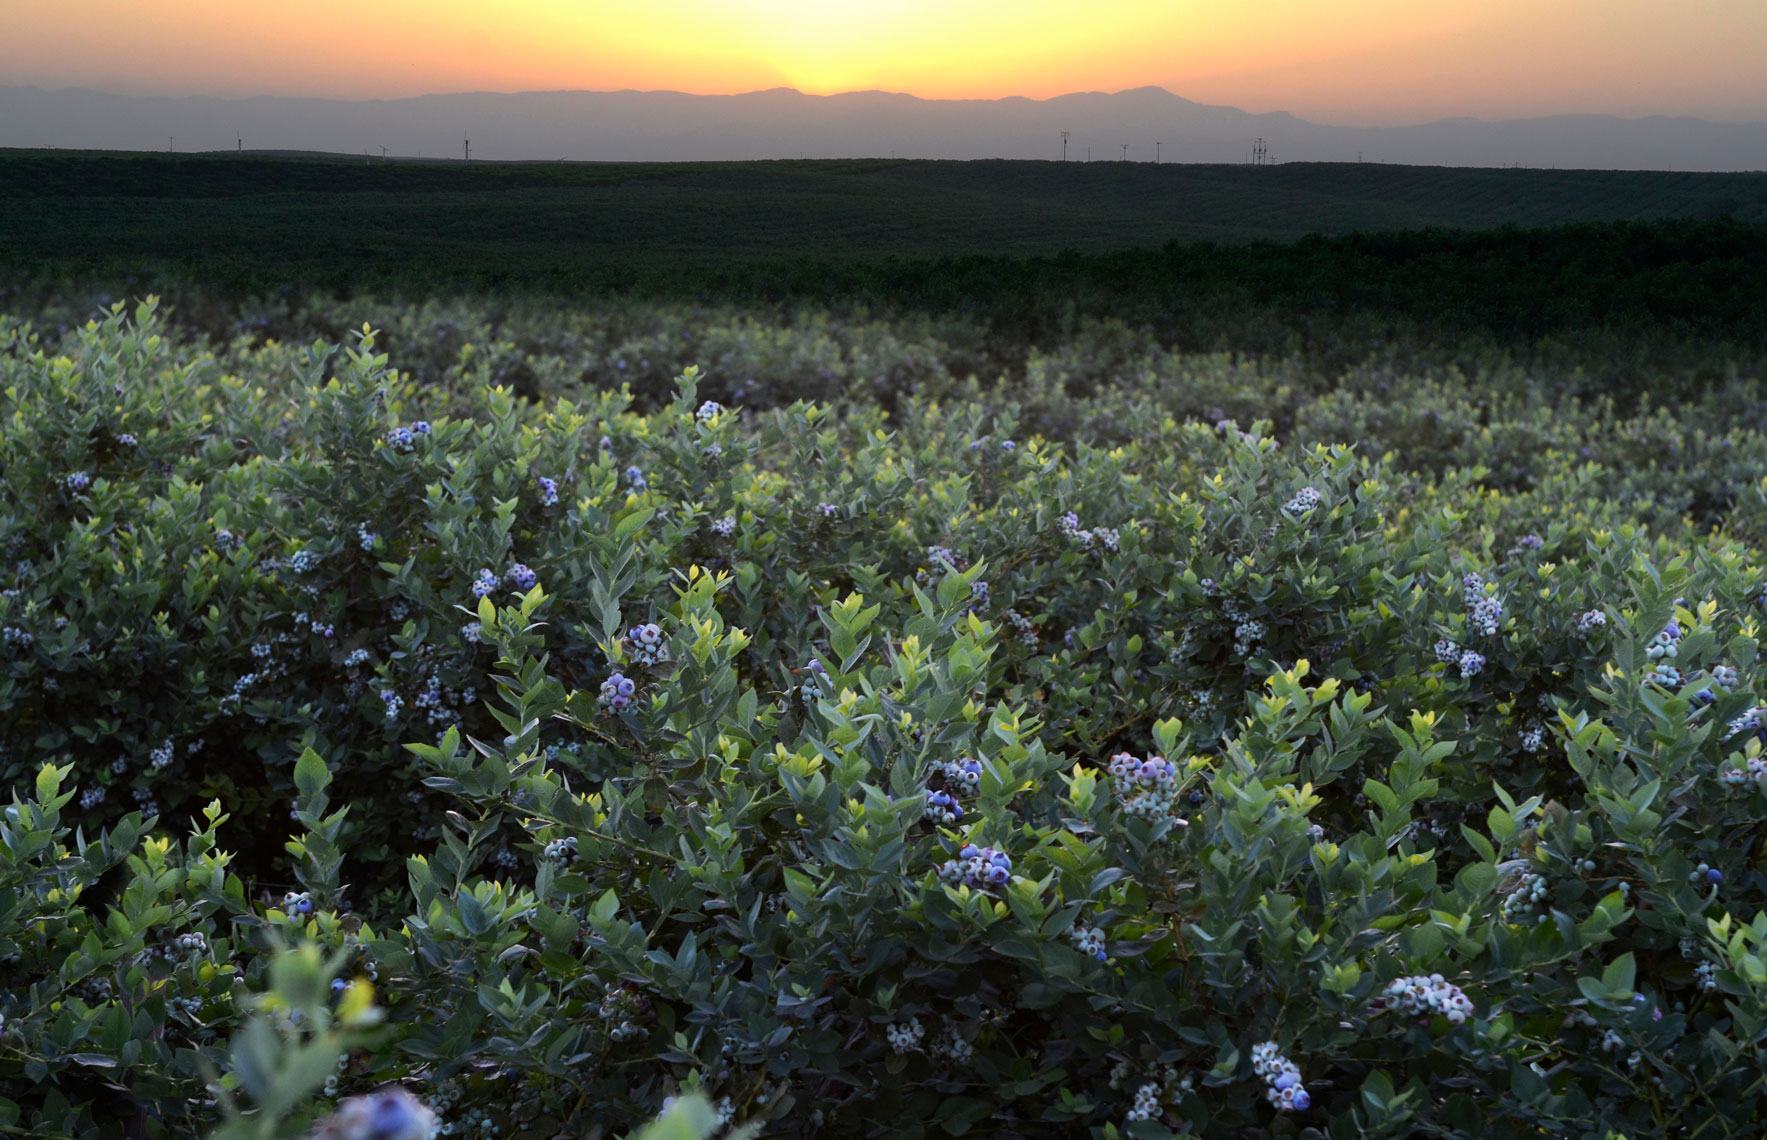 Blueberry-orchard-at-sunset-in-Delano-California-by-farming-photographer-Joe-Atlas..